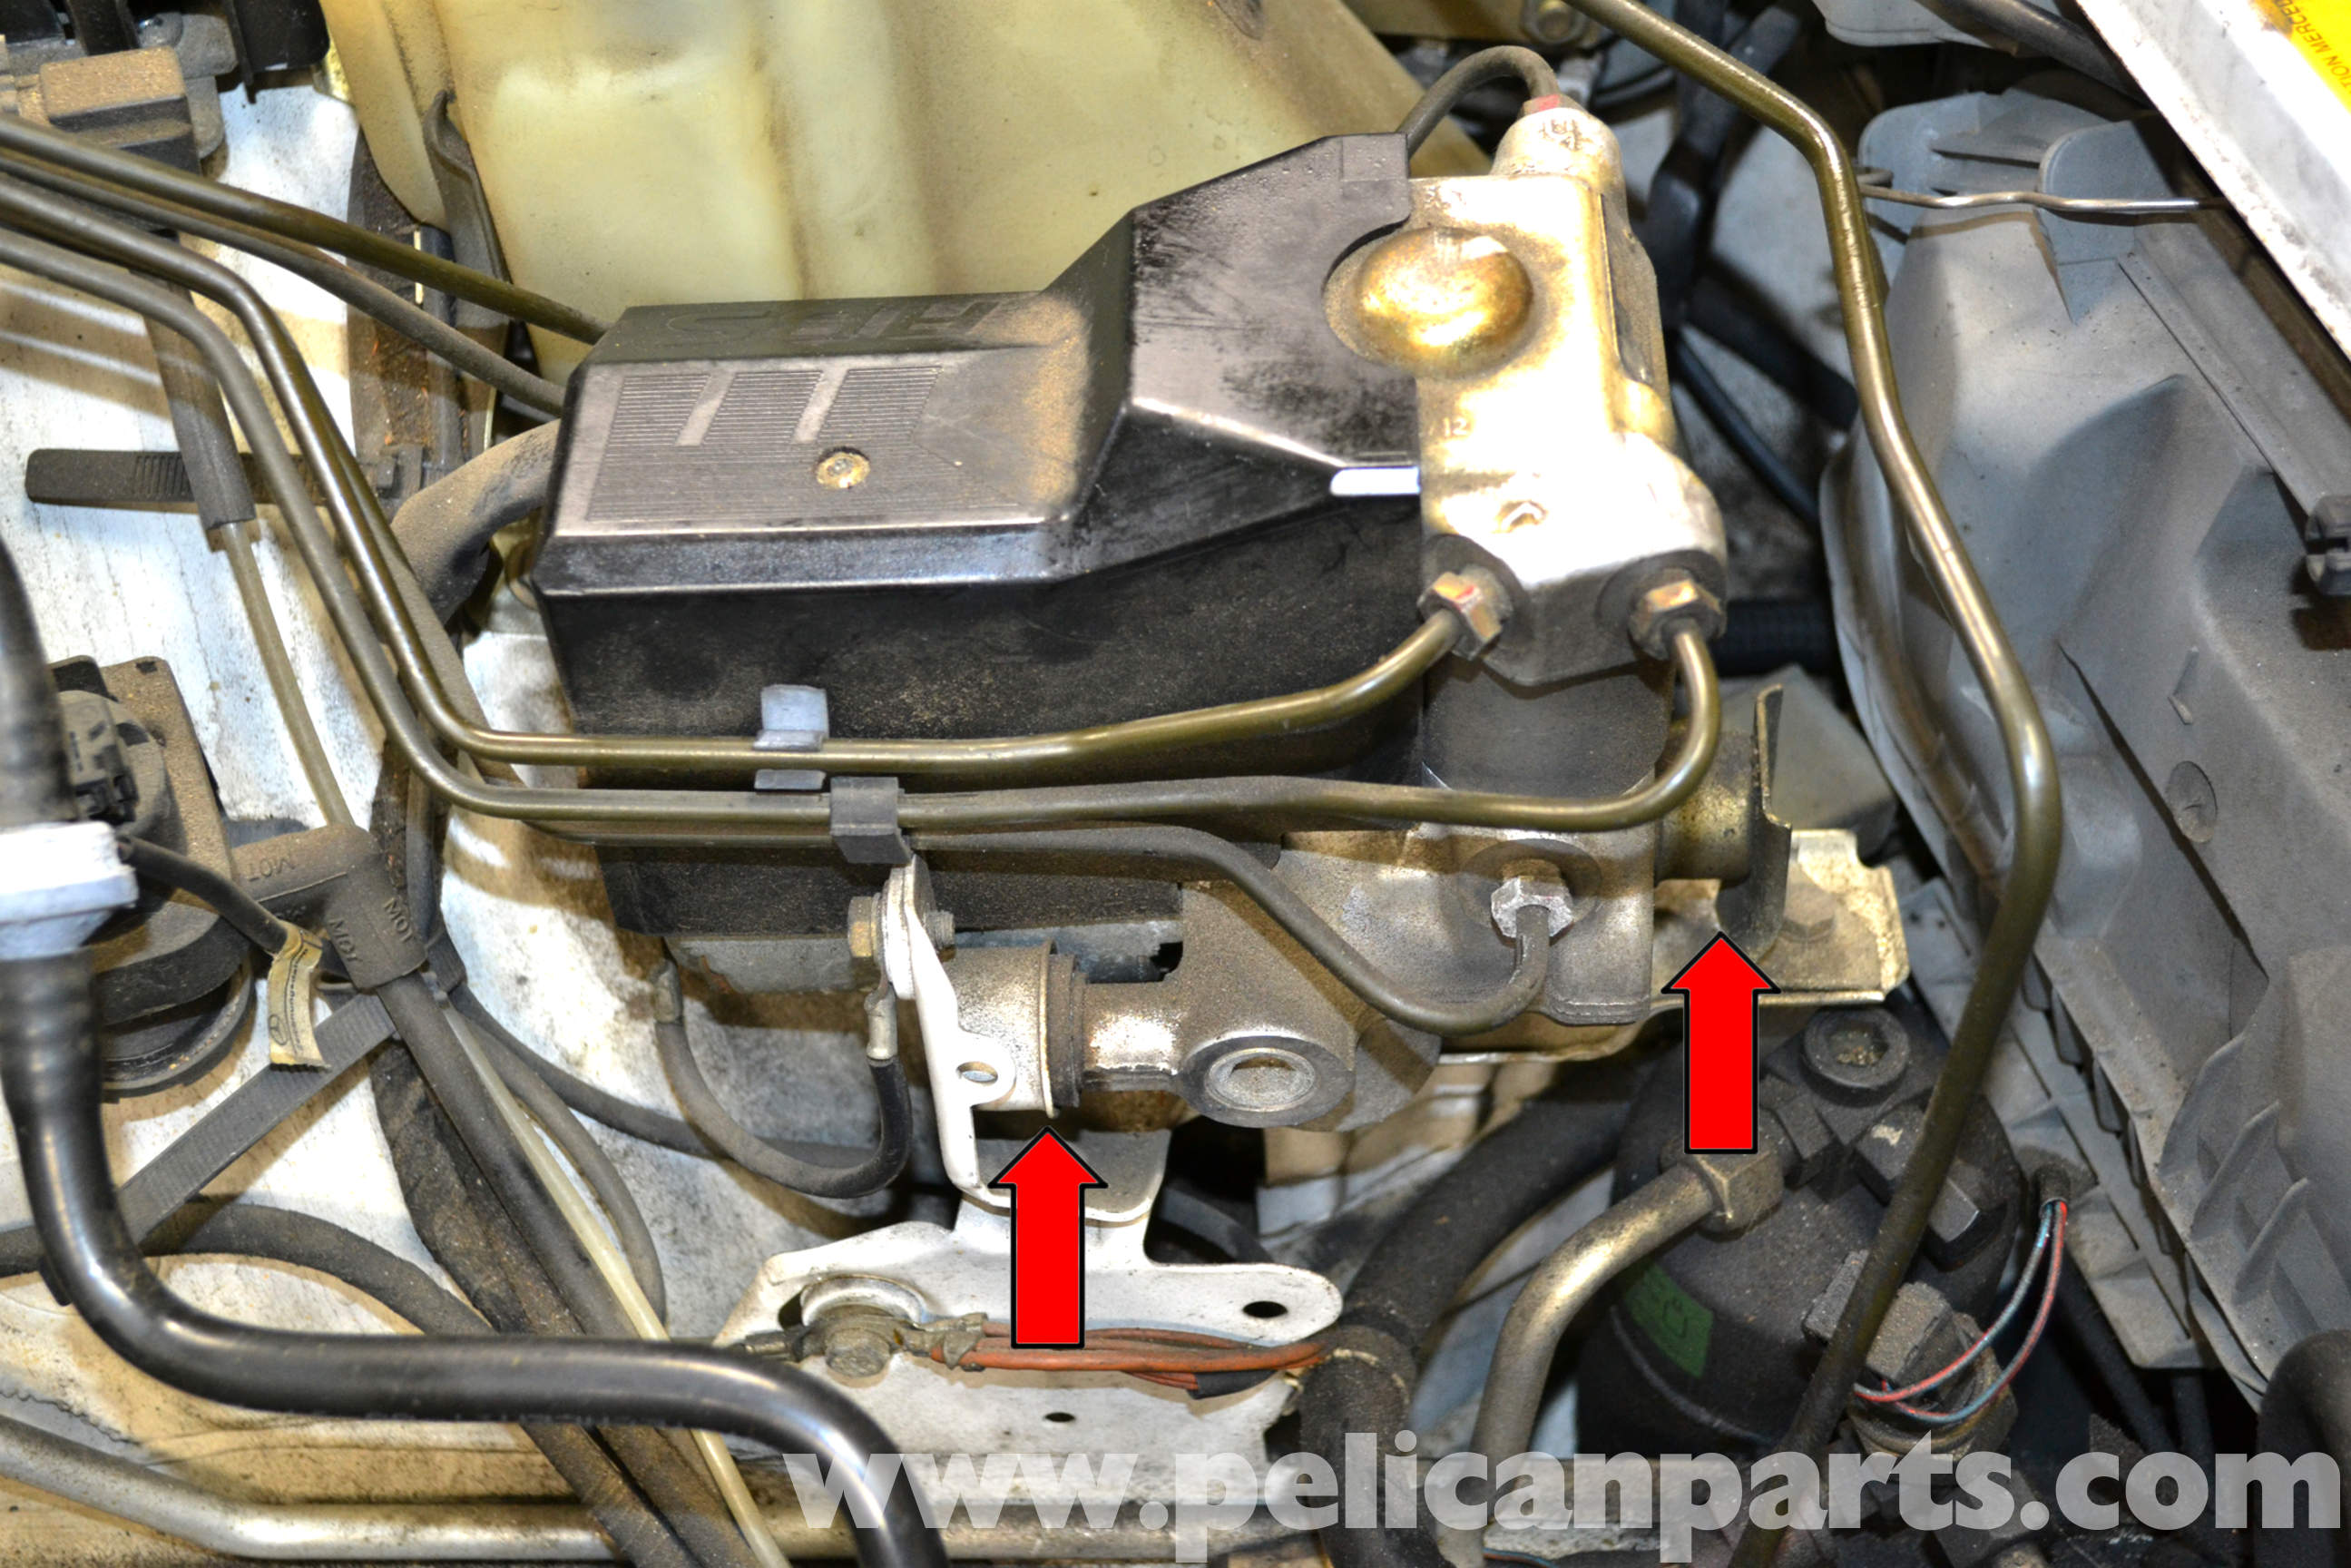 Mercedes benz w124 abs relay and pump replacement 1986 for Abs system mercedes benz